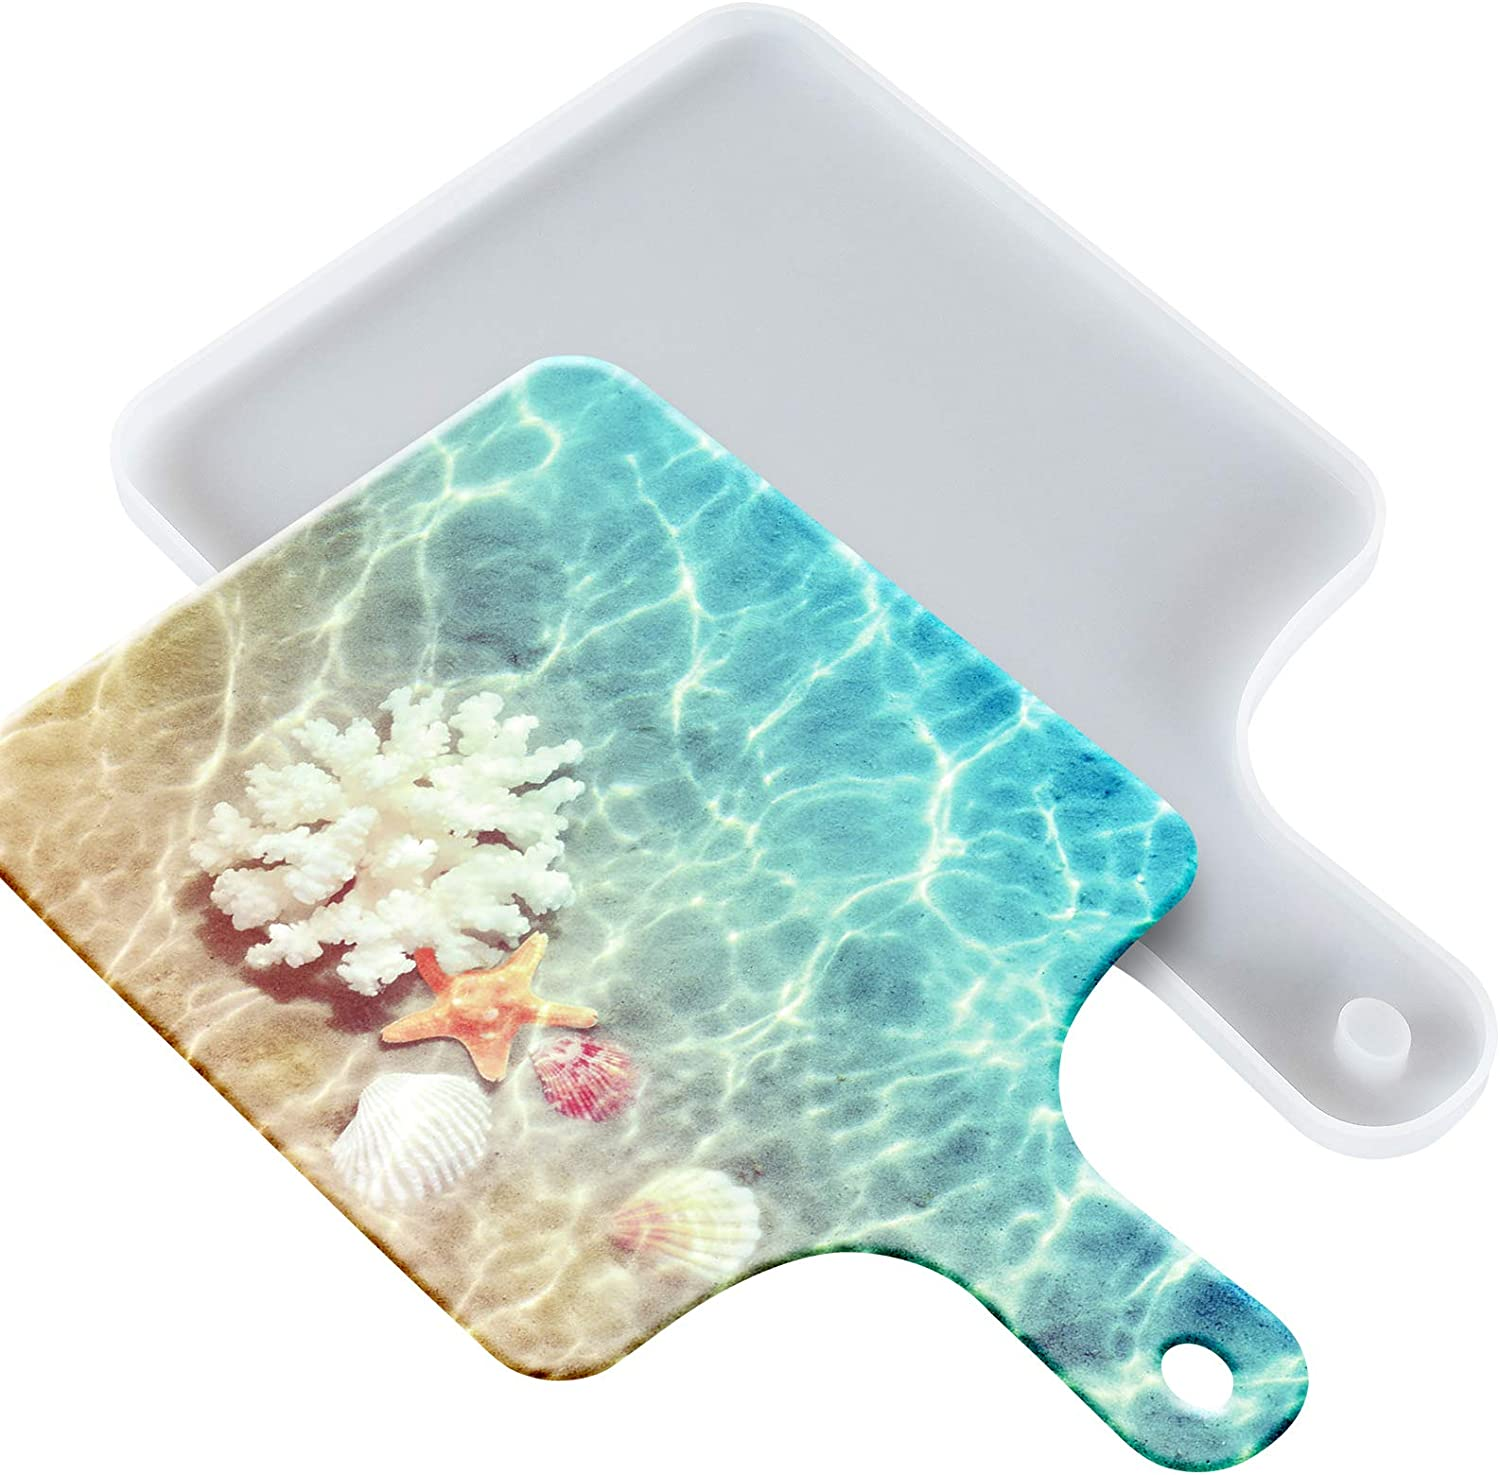 Tray Resin Molds, Serving Board Resin Molds,DIY Tray Molds for Epoxy Resin, Great for Home Decoration, Resin Ocean Wave Painting Art(Rectangle)